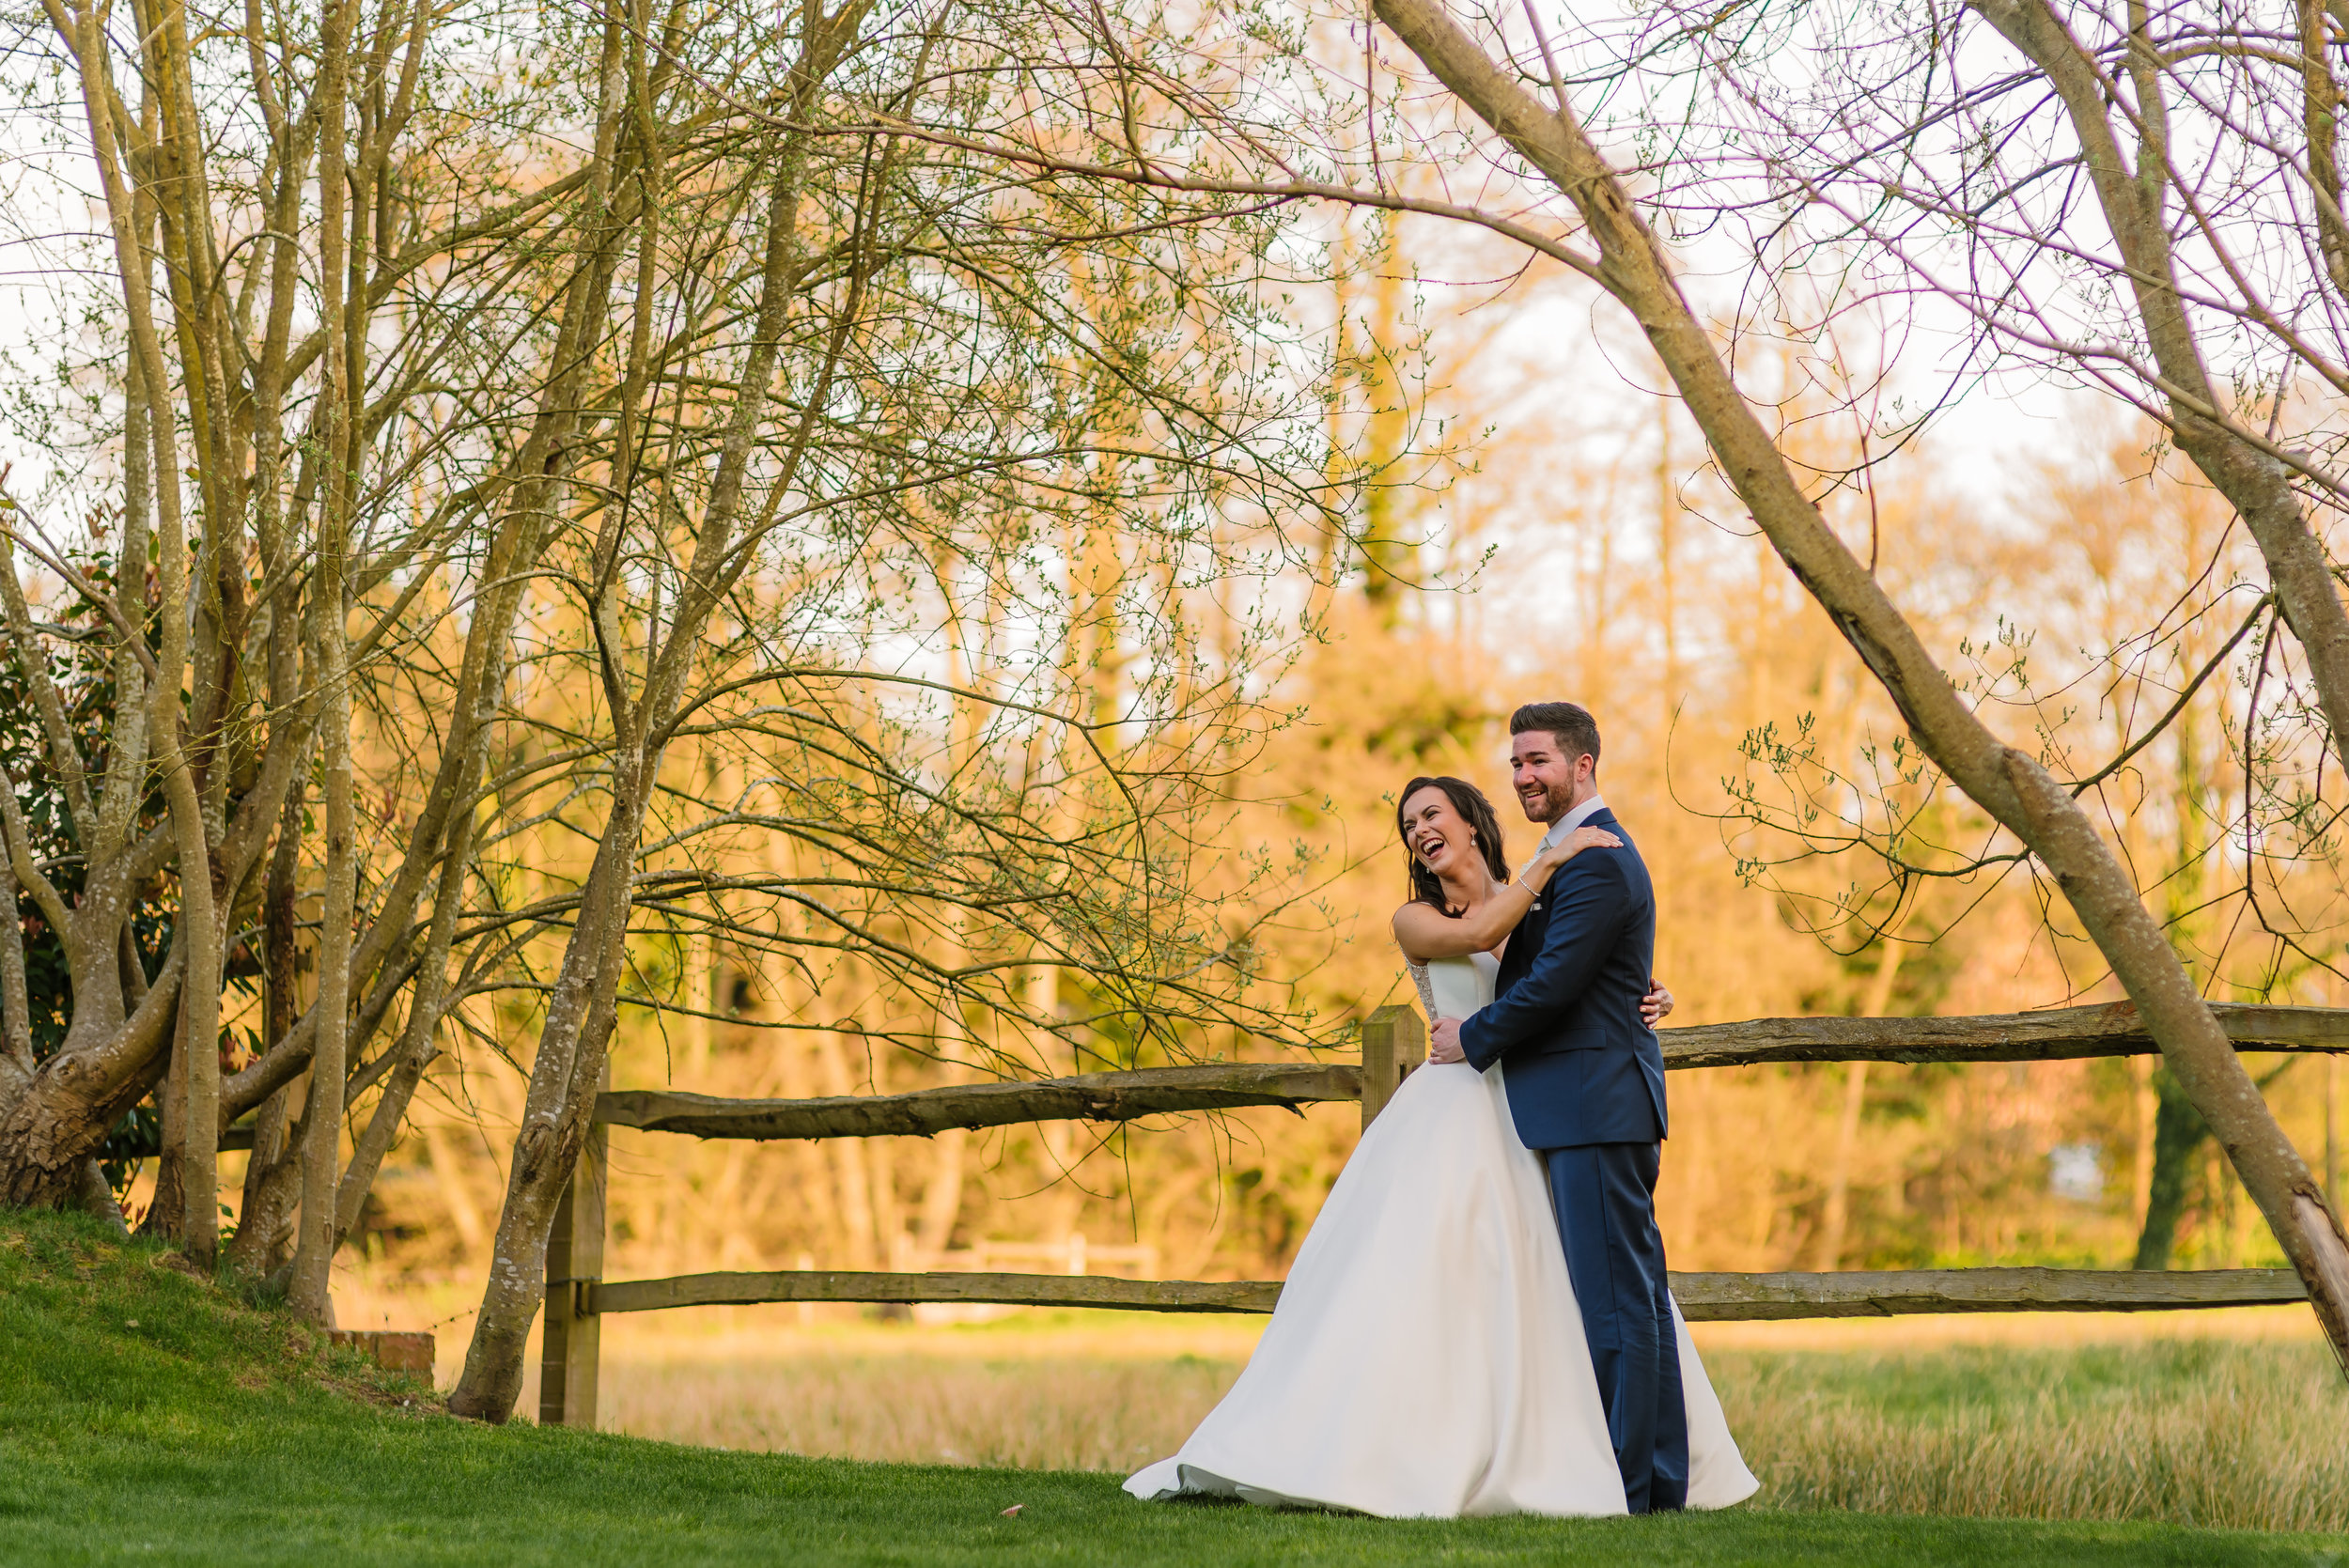 Sarah-Fishlock-Photography : Hampshire-wedding-photographer-hampshire : fleet-wedding-photographer-fleet : Millbridge-Court-Wedding-Photographer : Millbridge-Court-Wedding-Venue : Surrey-wedding-venue-1235.jpg